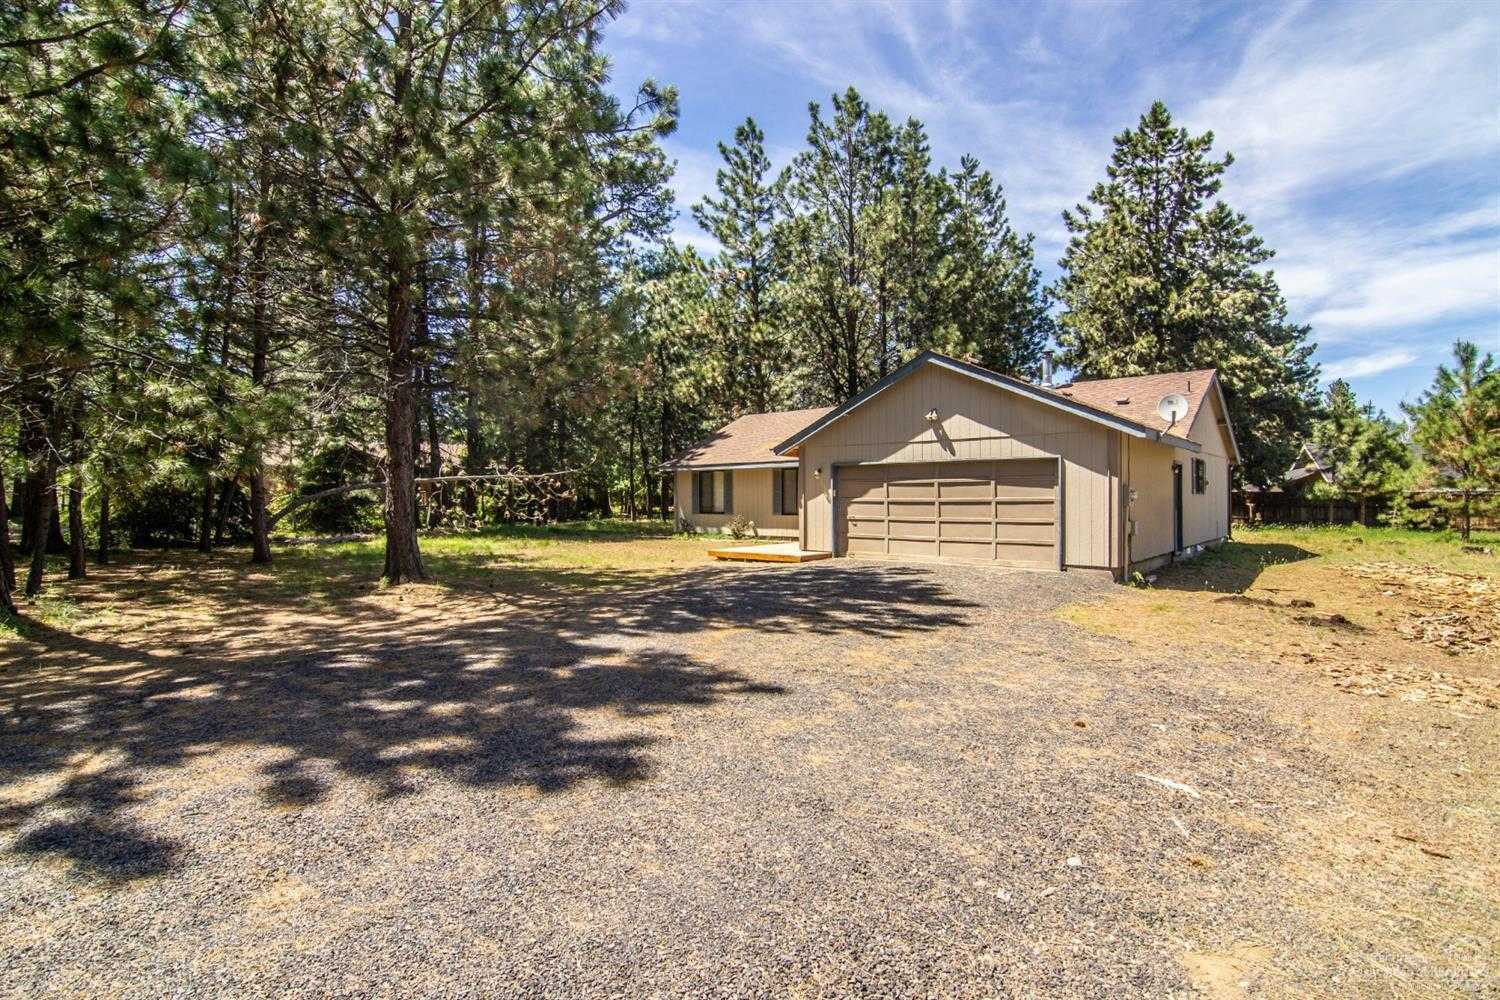 $319,000 - 3Br/2Ba -  for Sale in Sisters